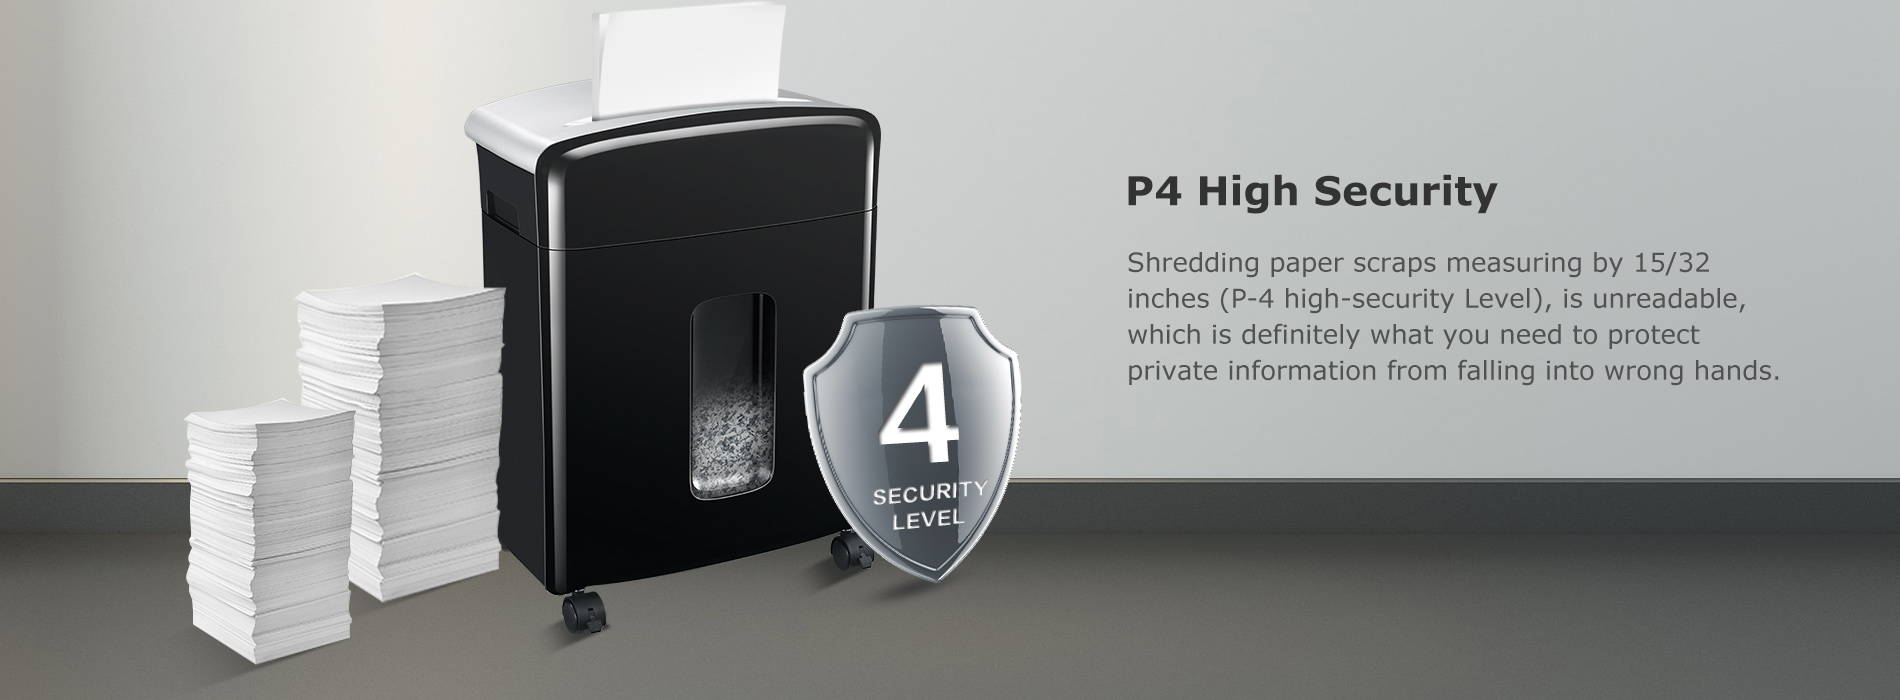 P4 High Security Shredding paper scraps measuring by 15/32 inches (P-4 high-security Level), is unreadable, which is definitely what you need to protect private information from falling into wrong hands.